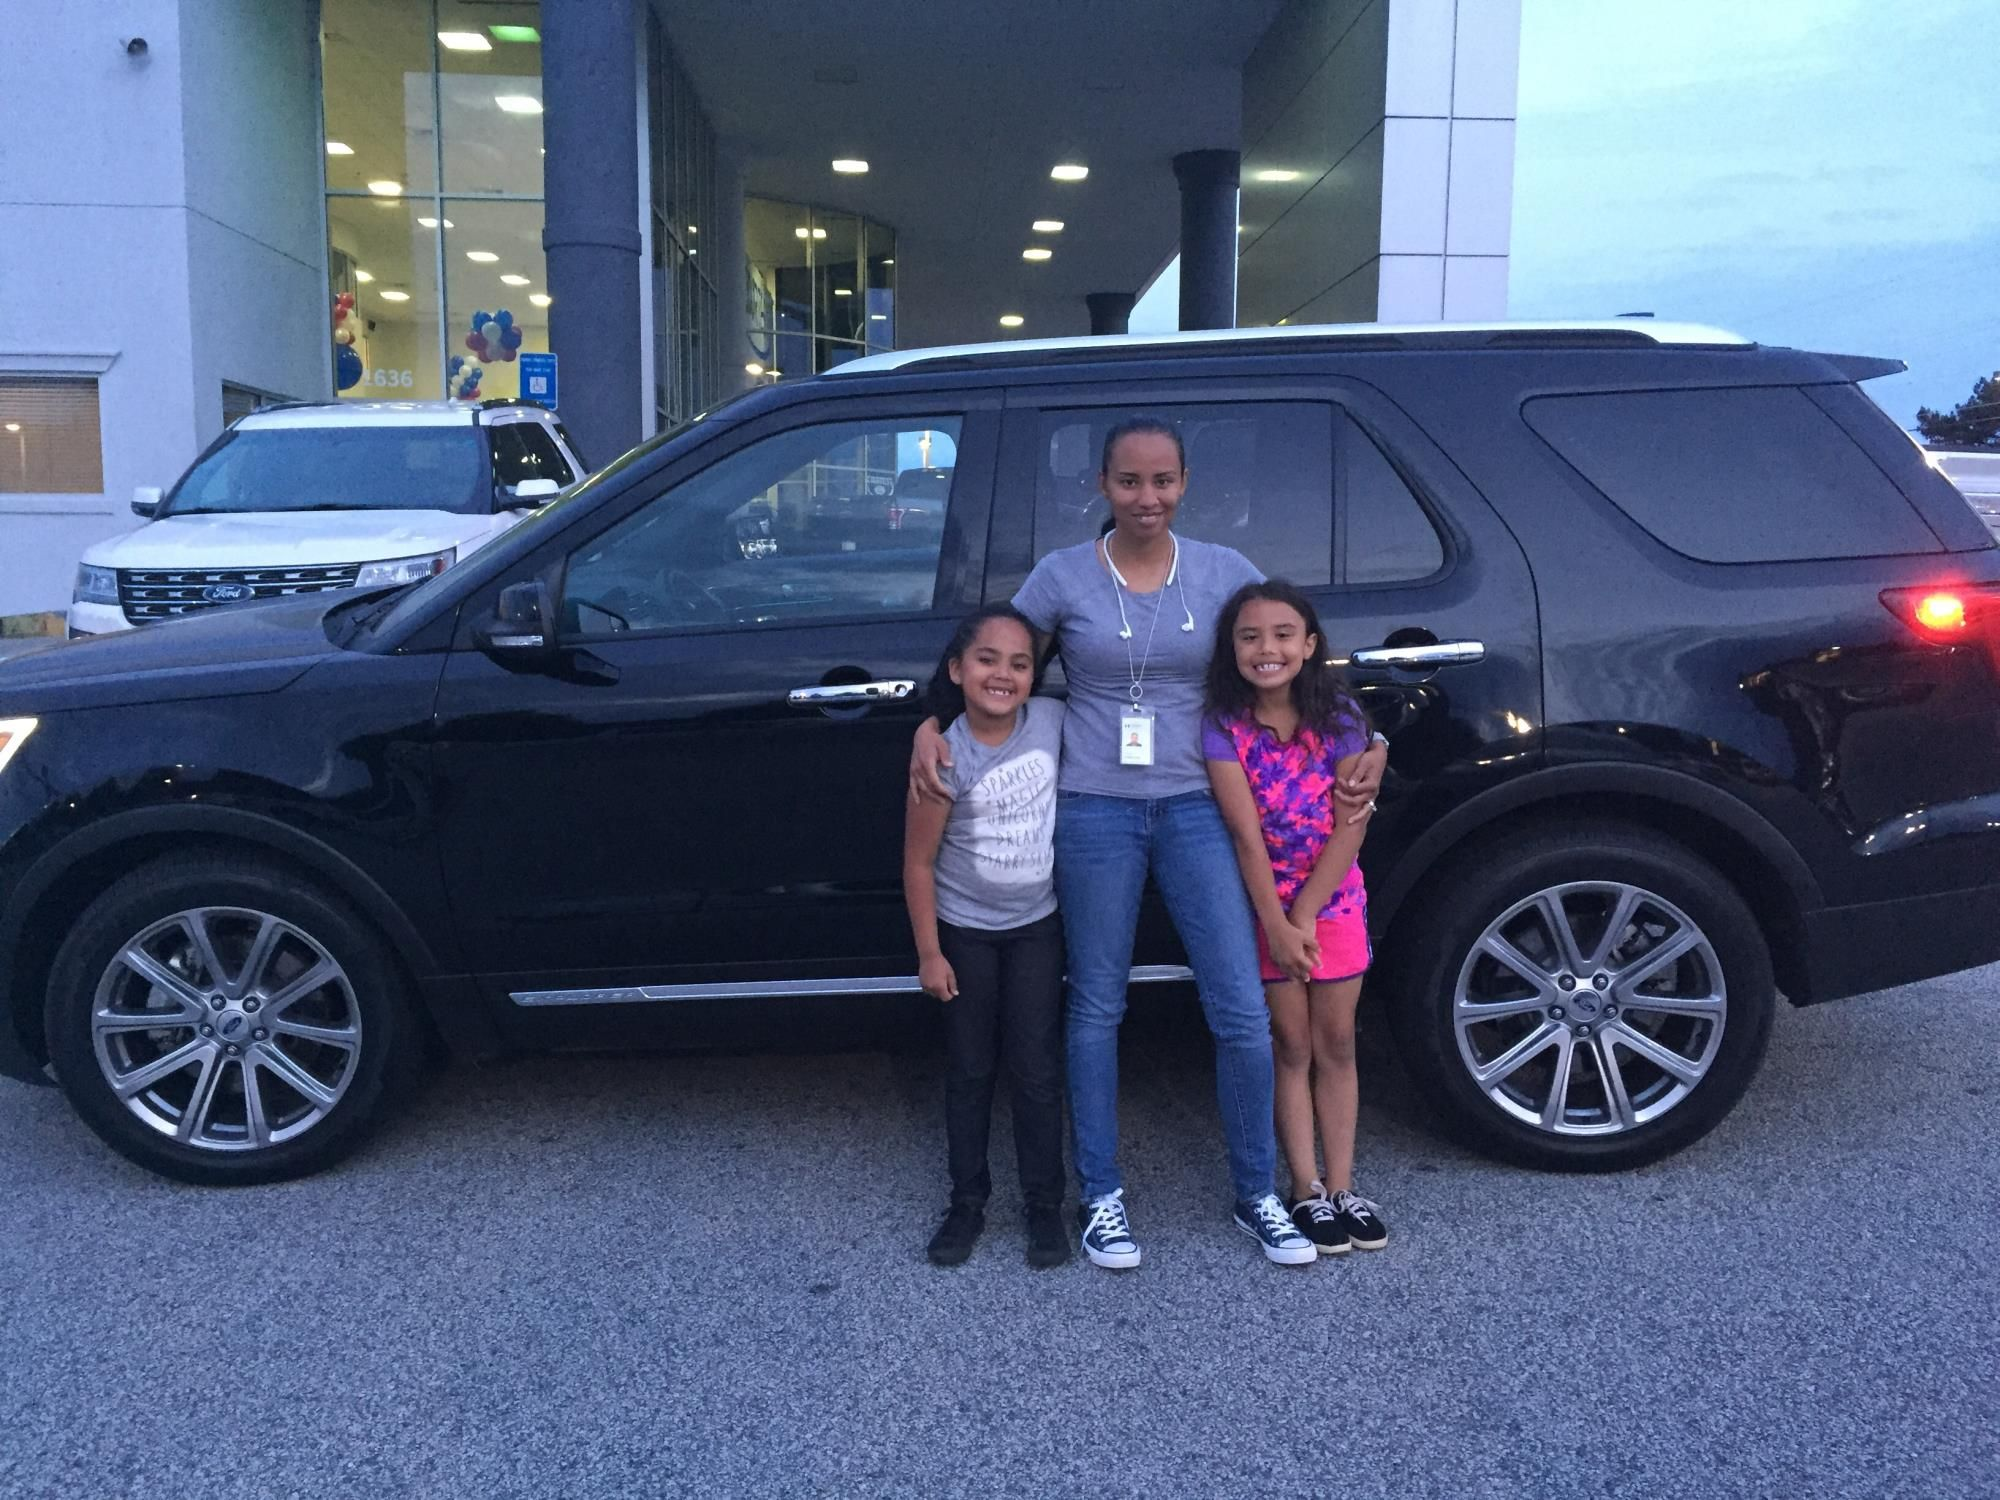 Donald Scarbrough reviews the 2016 Ford Explorer they purchased from